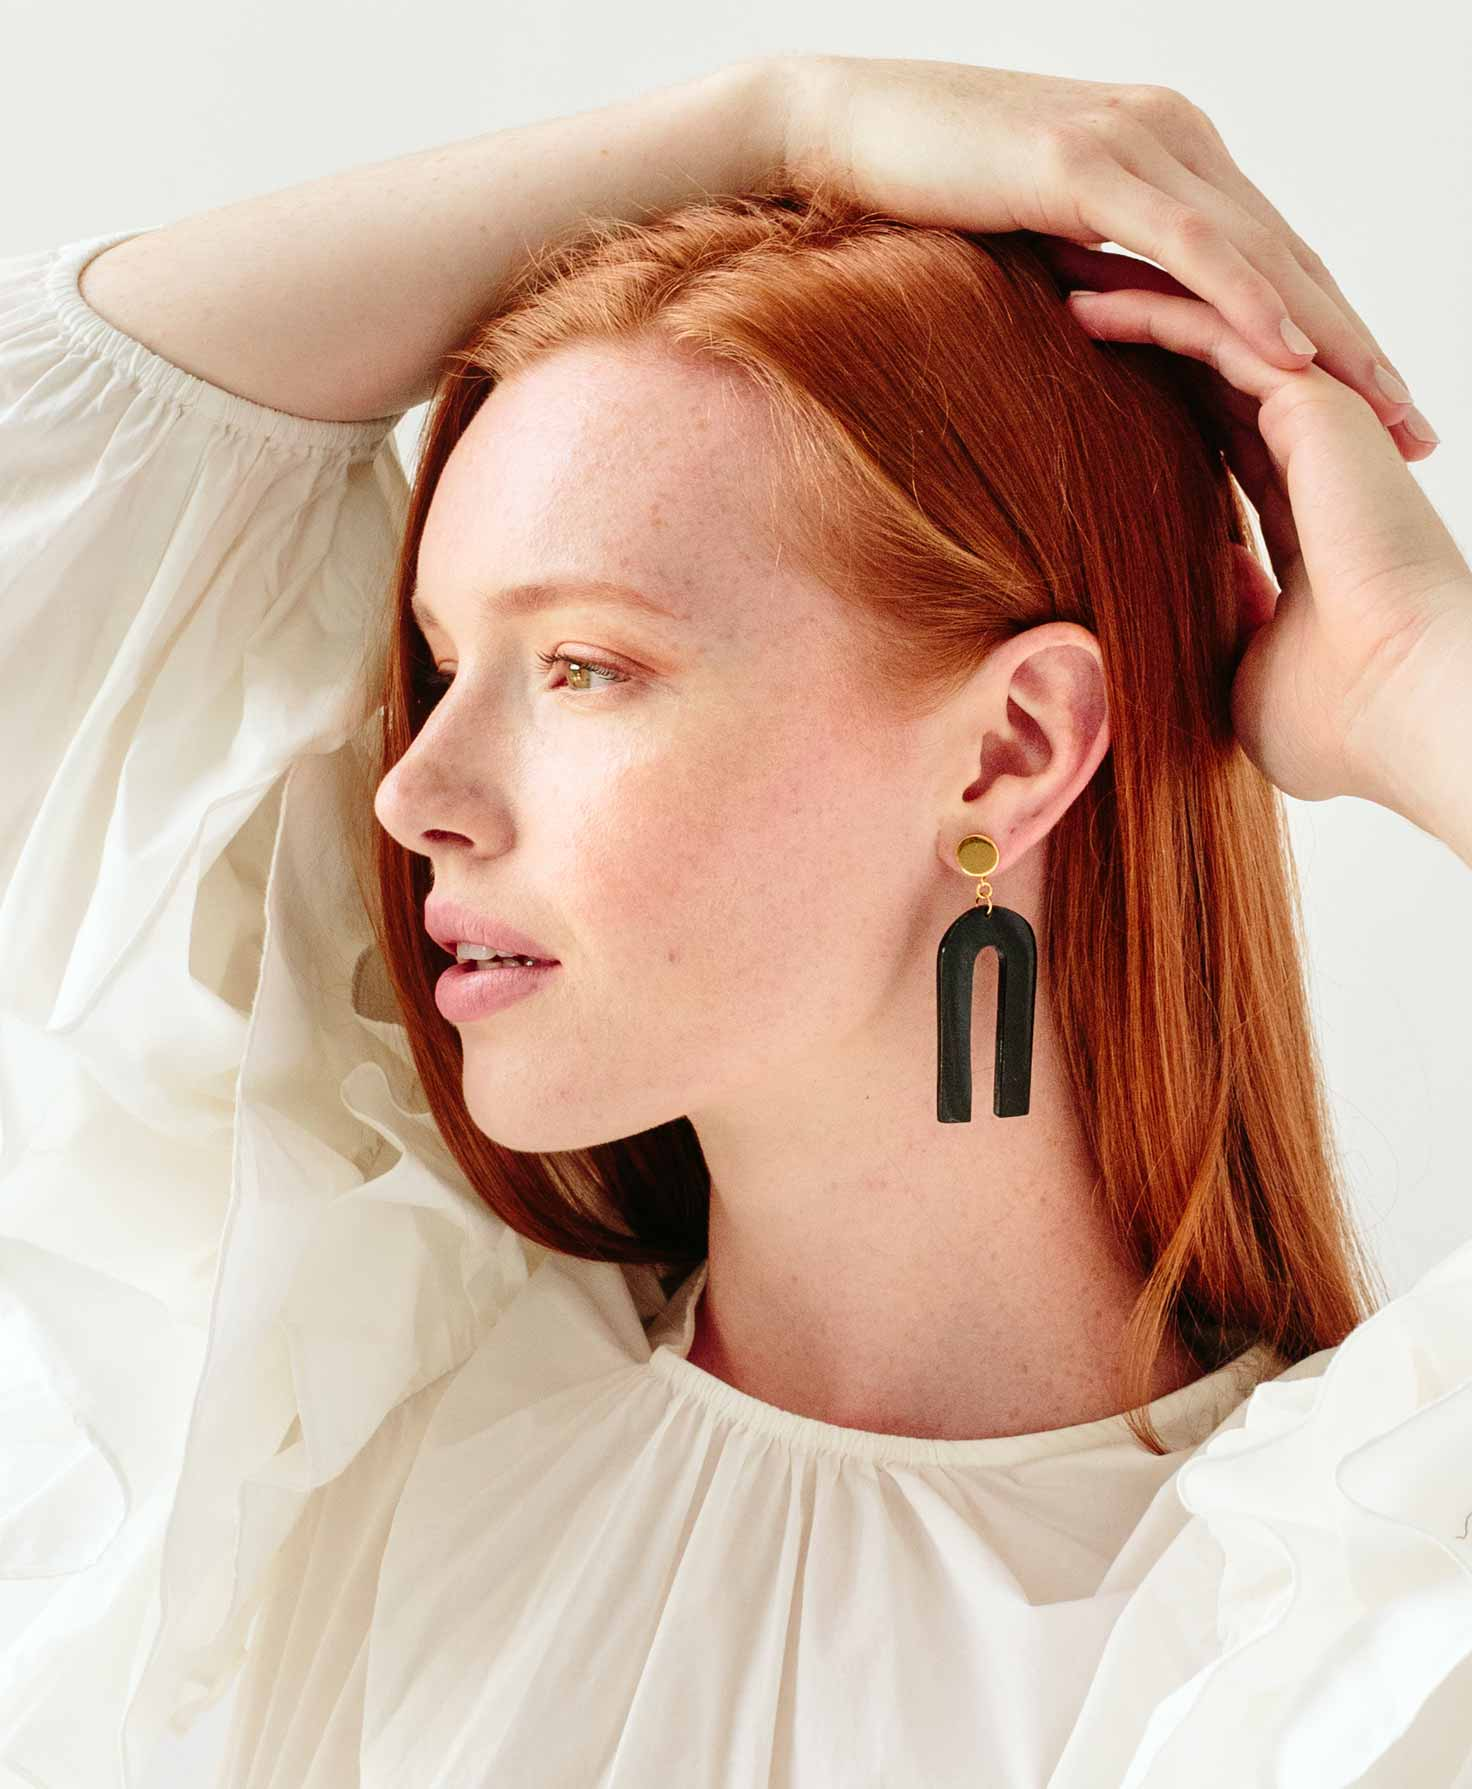 A model wears the Orleans Earrings. The earrings hang down several inches and make a modern statement when paired with her flowy white blouse.